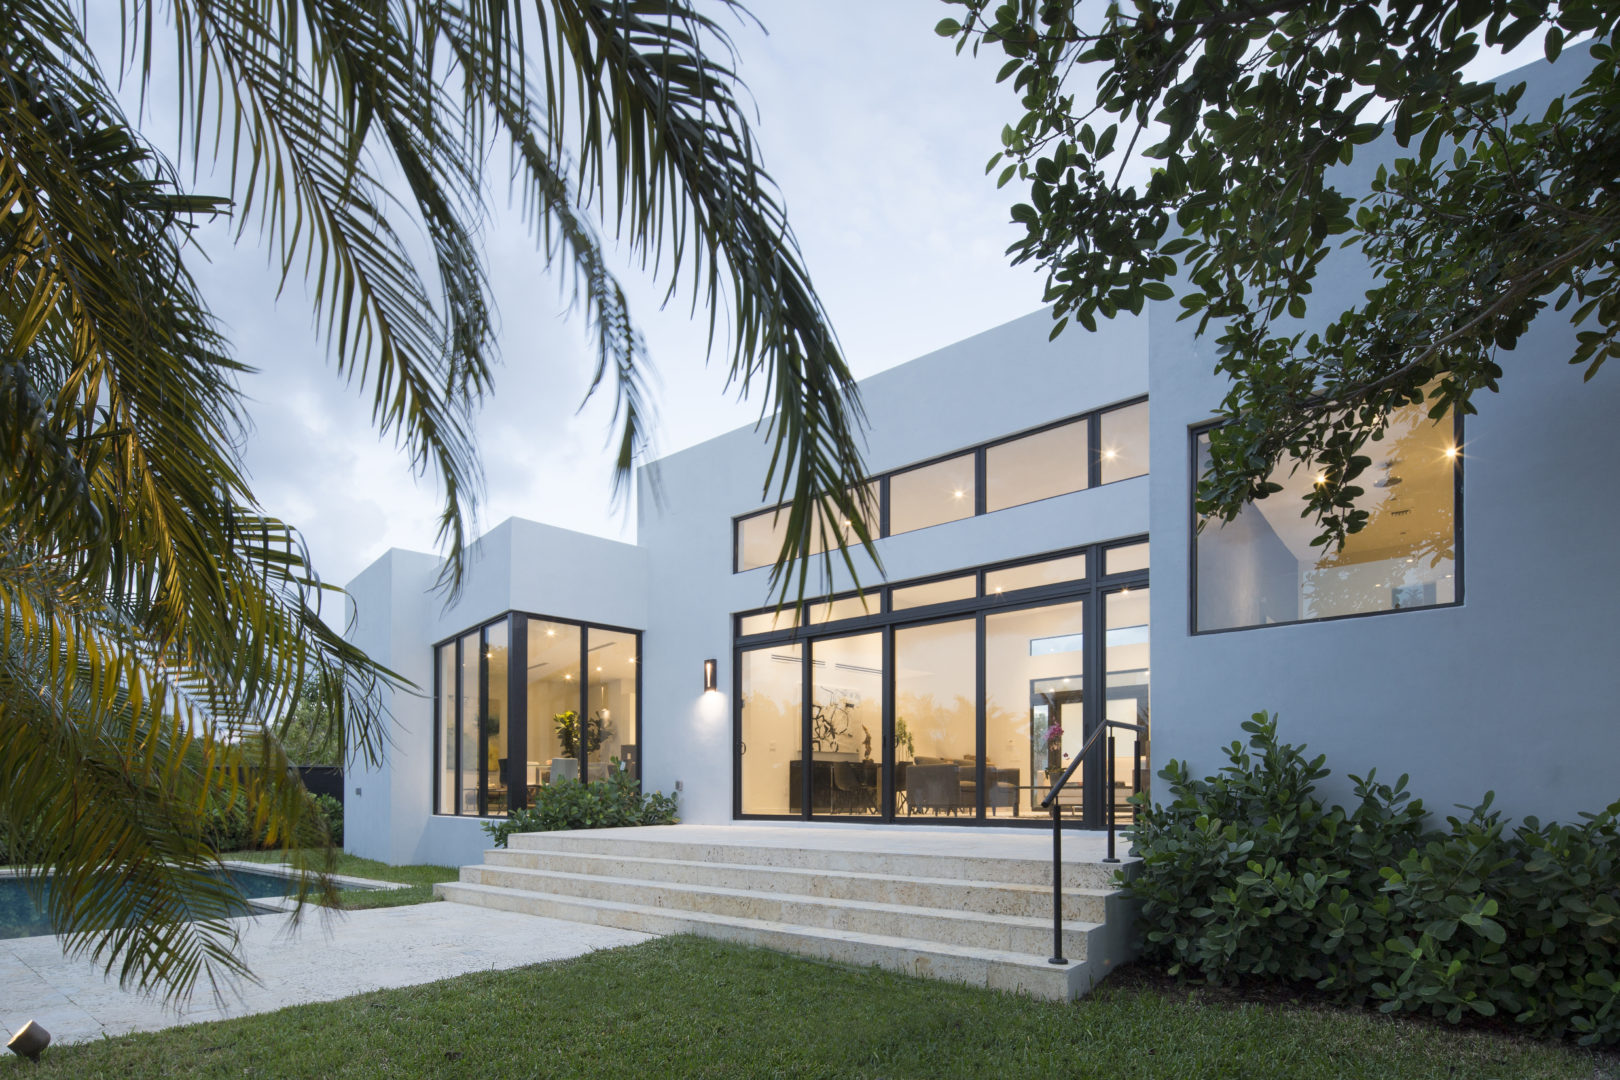 Miami Home Architecture Construction Residence Builder Contractor pool landscape steps coral stone water